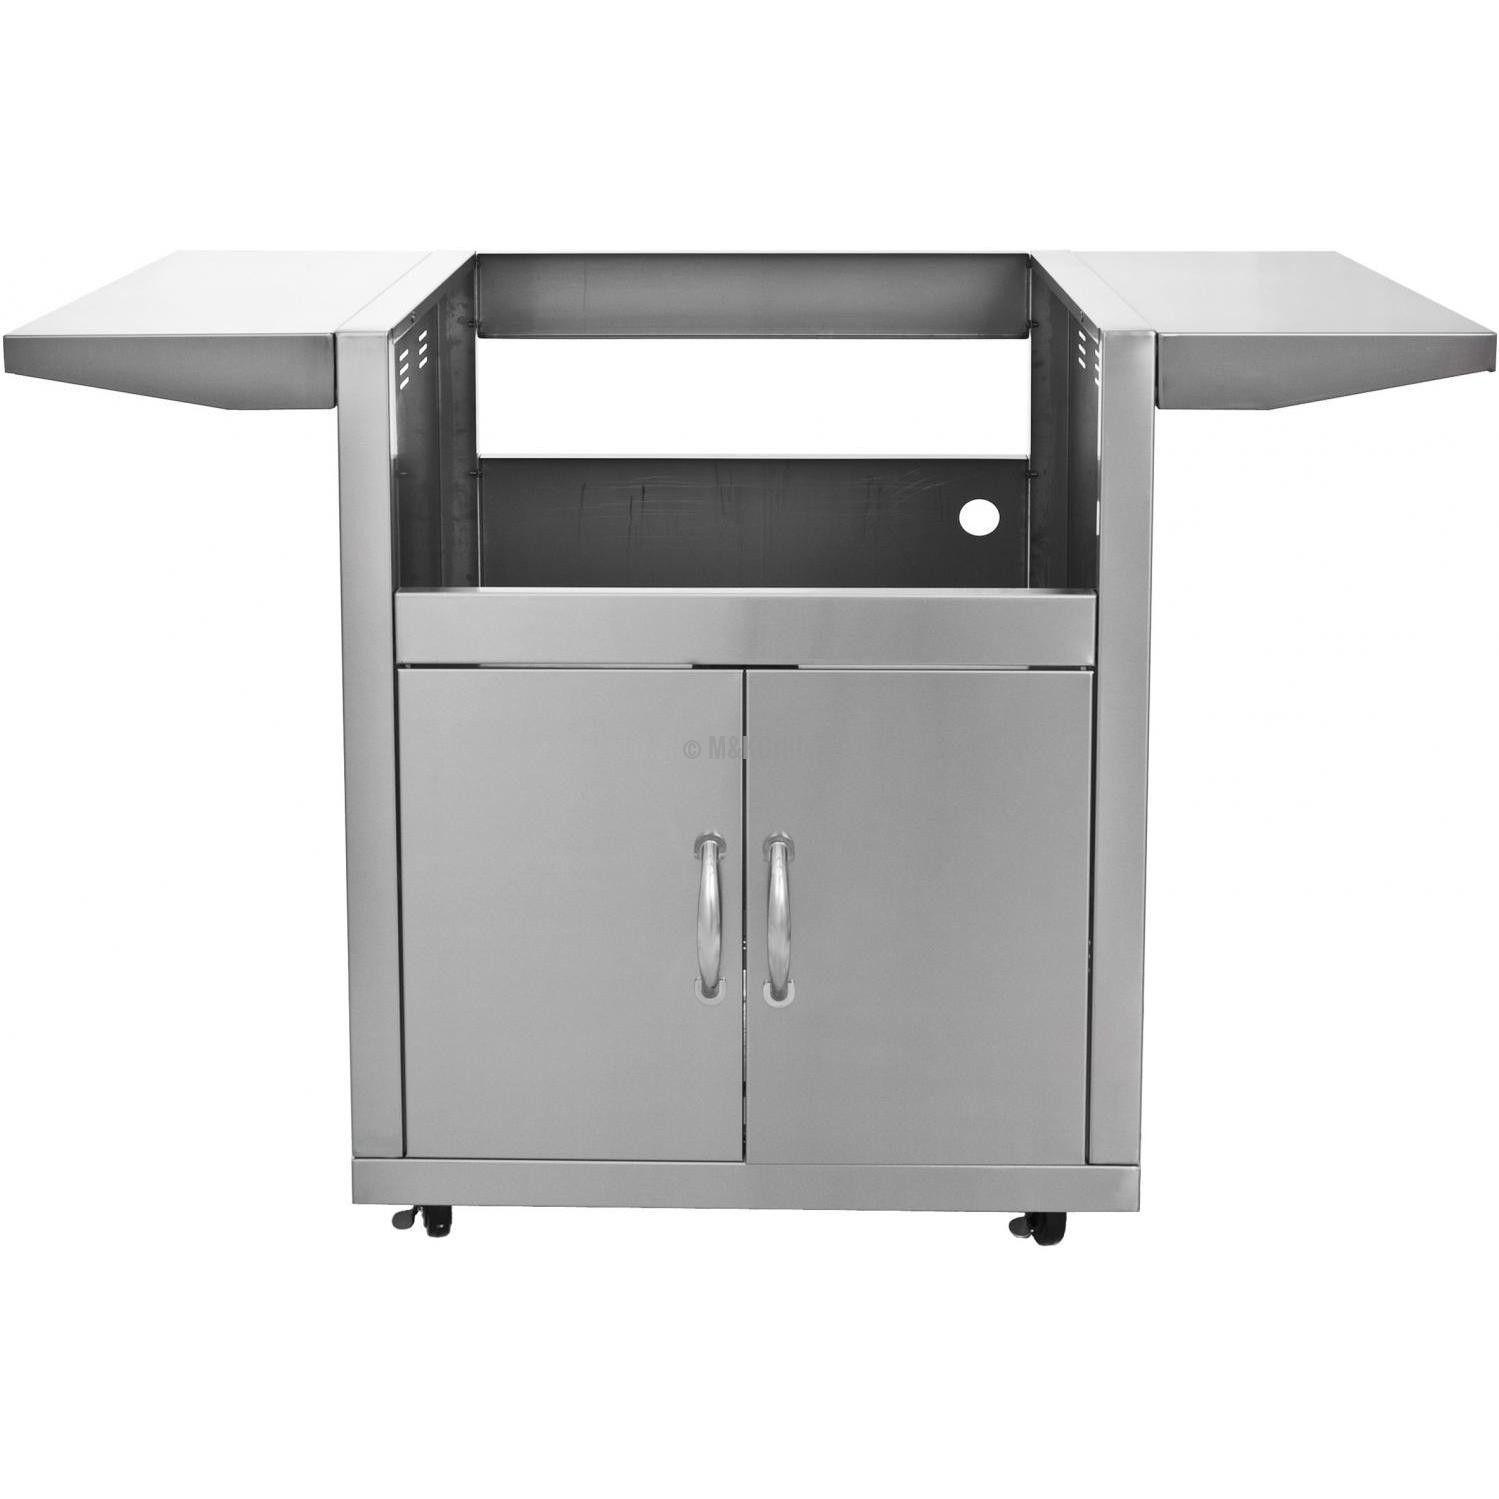 Blaze Grill Cart For 25 Inch Gas Grill SKU BLZ 3 CART